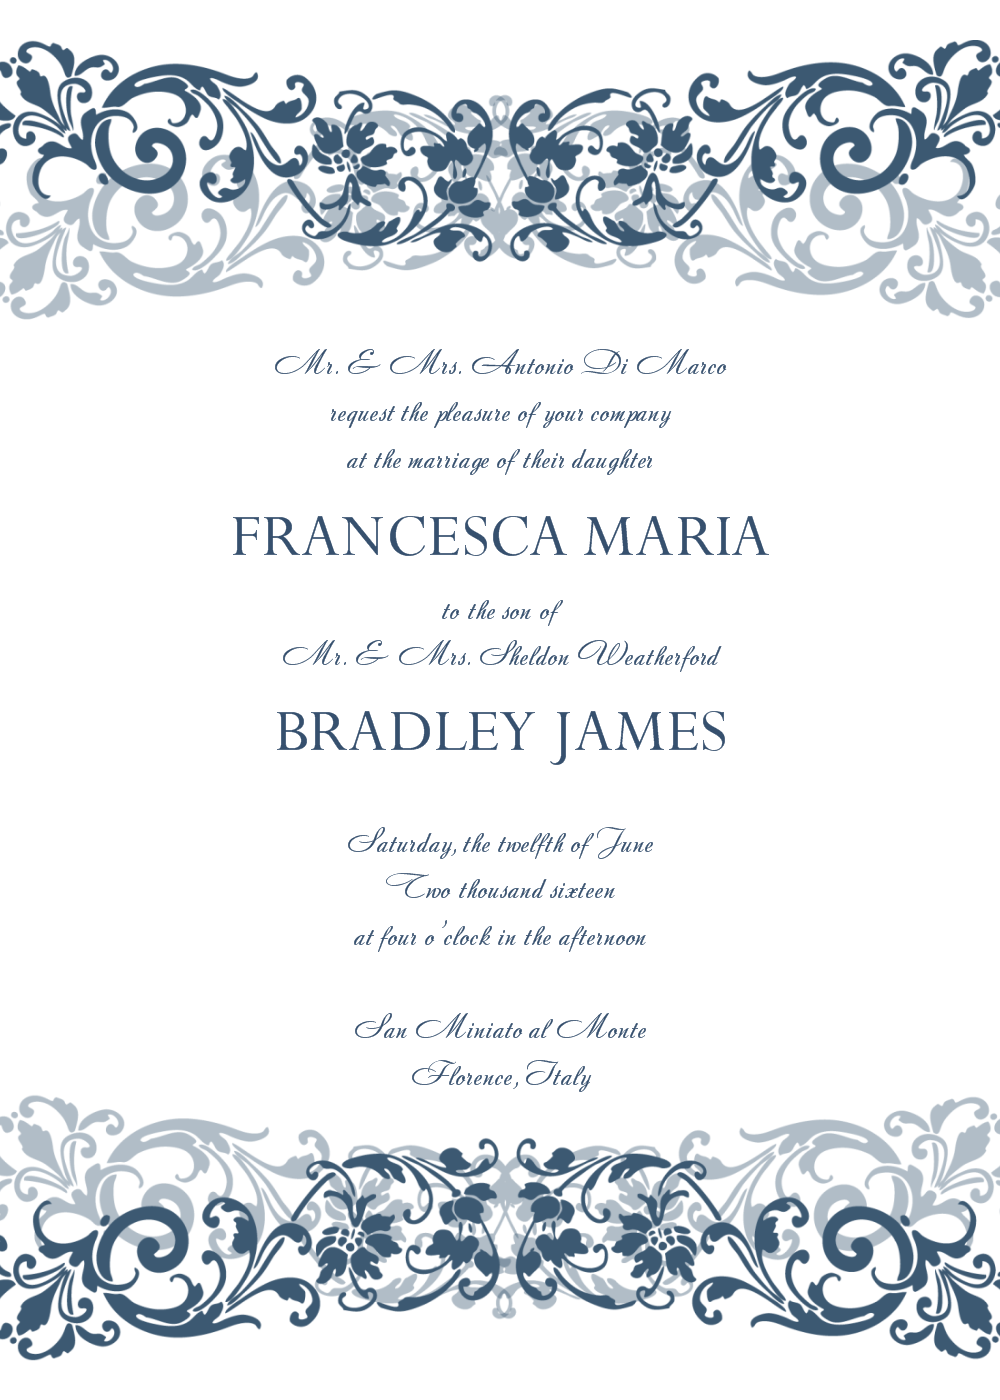 30 free wedding invitations templates free wedding invitation 30 free wedding invitations templates stopboris